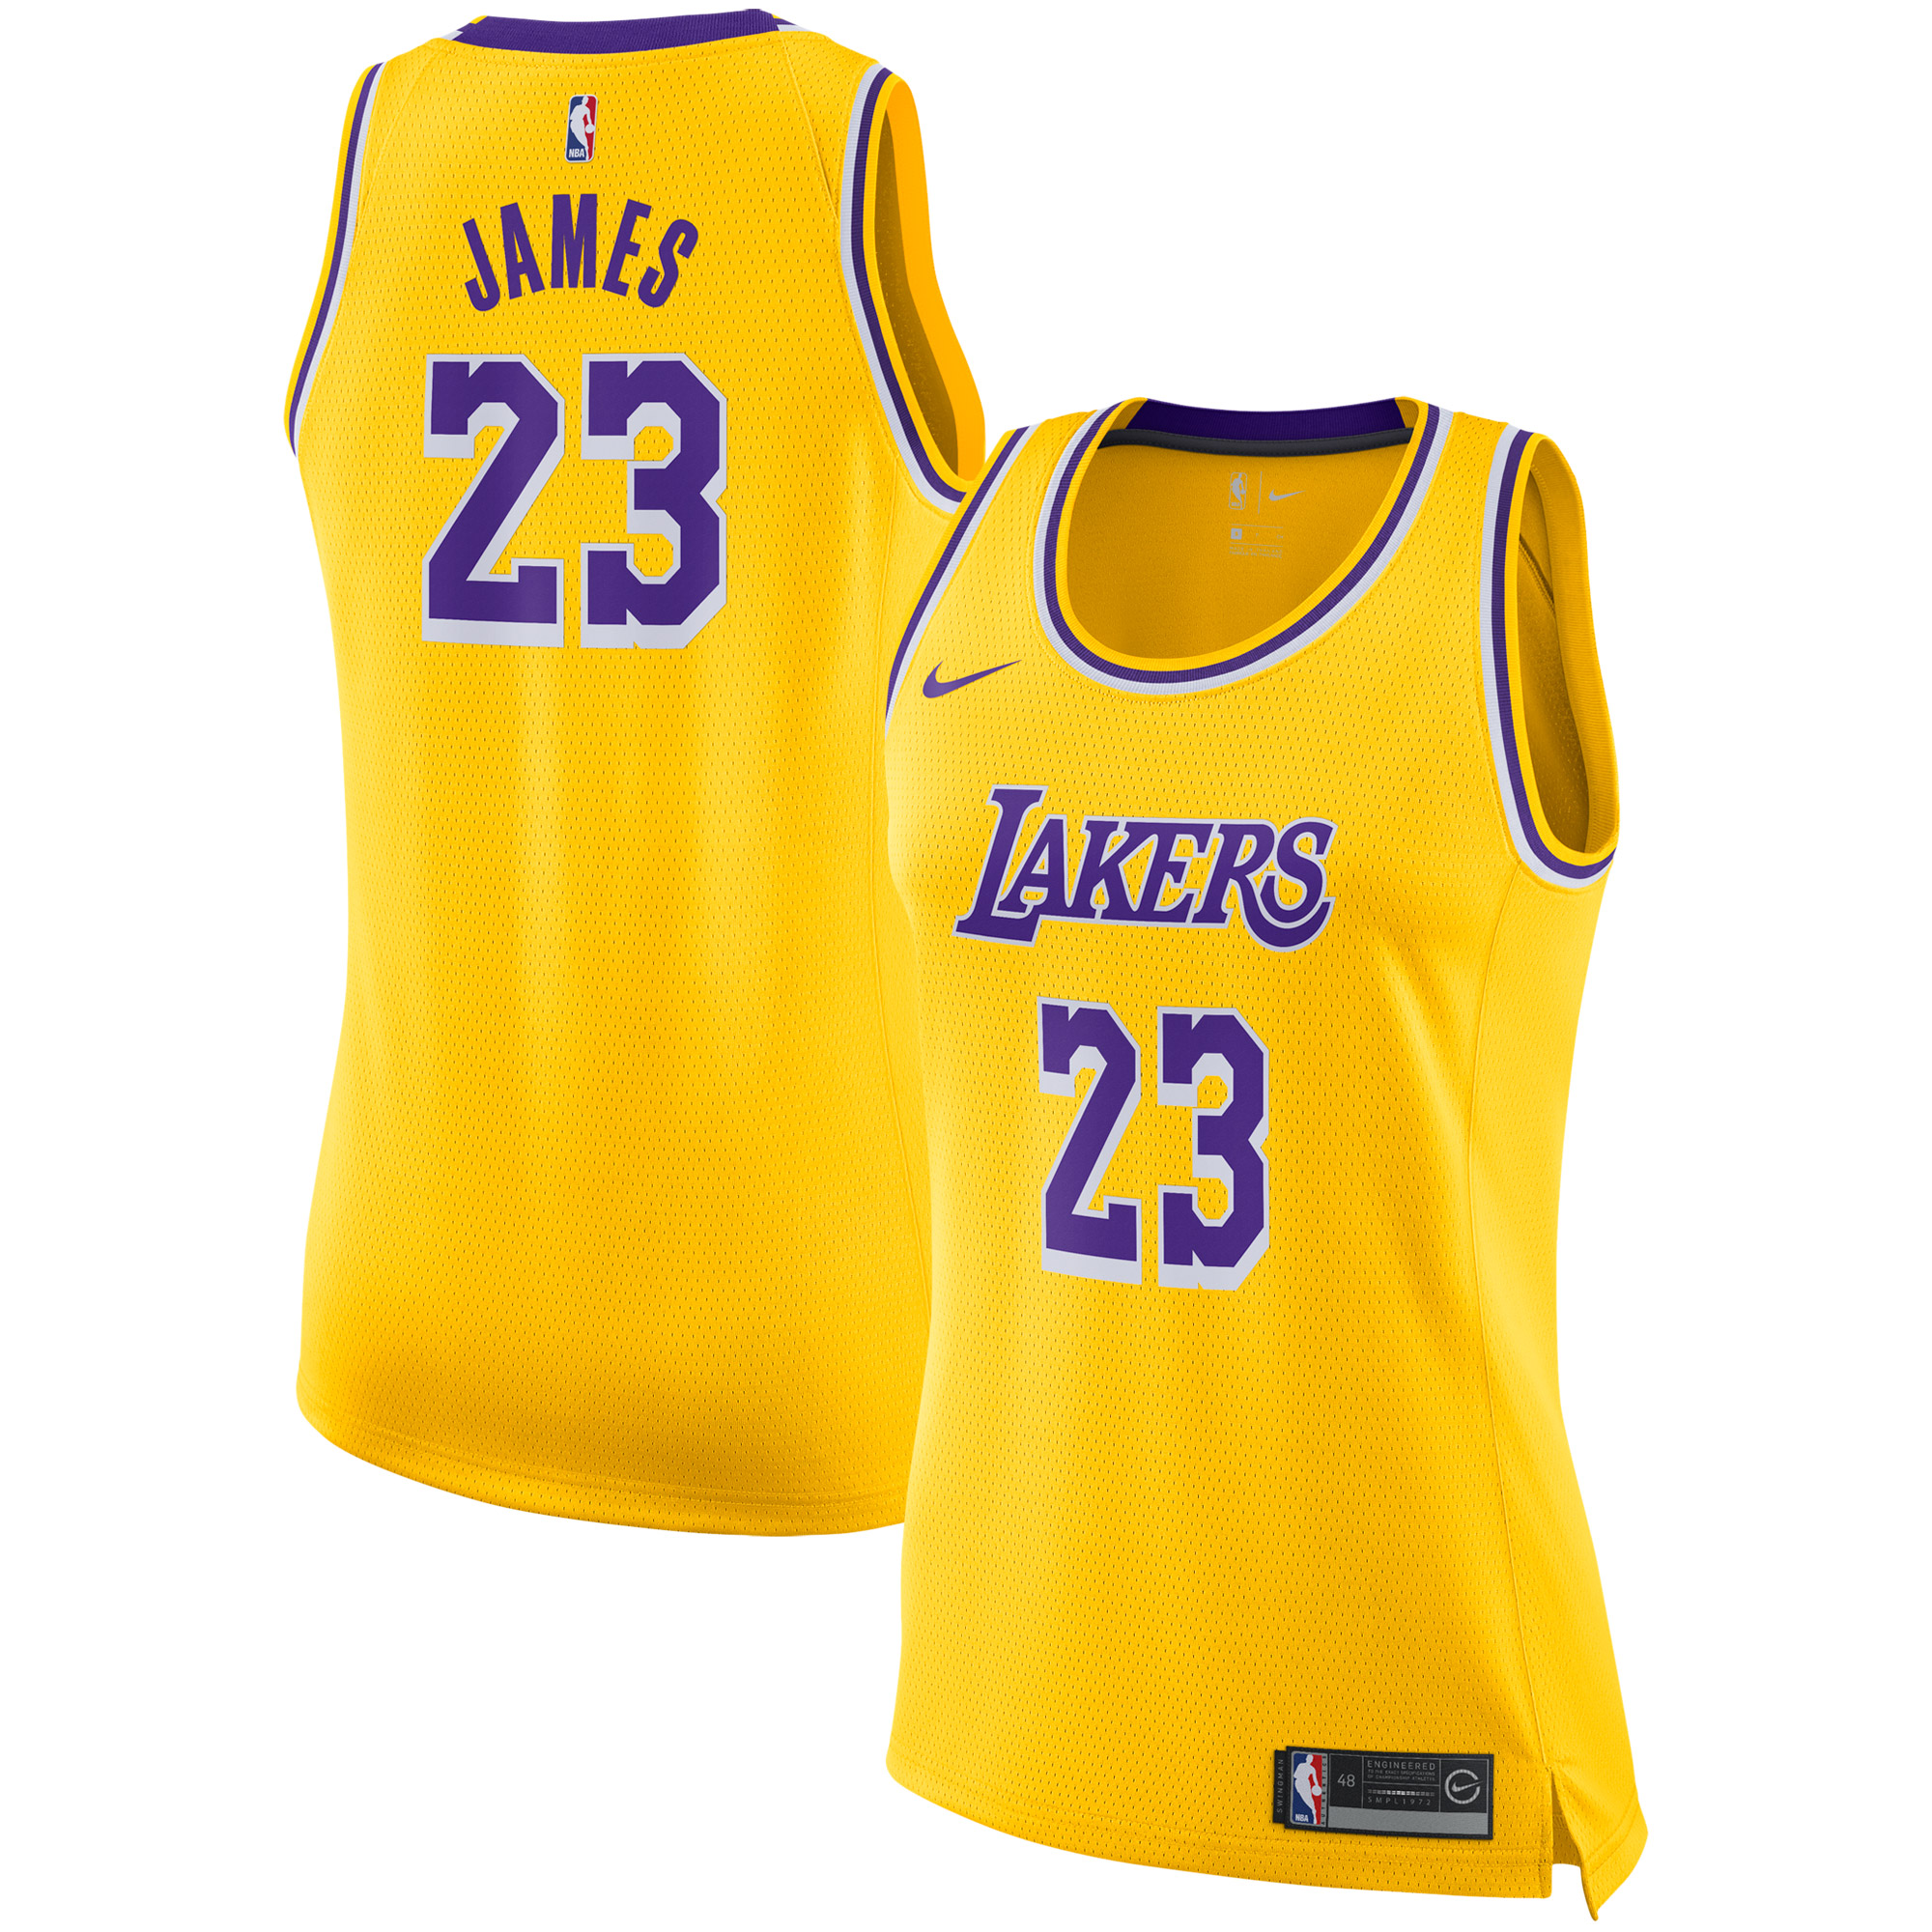 3744a605a04 LeBron James Los Angeles Lakers Nike Women s Swingman Jersey - Gold - Icon  Edition - Walmart.com